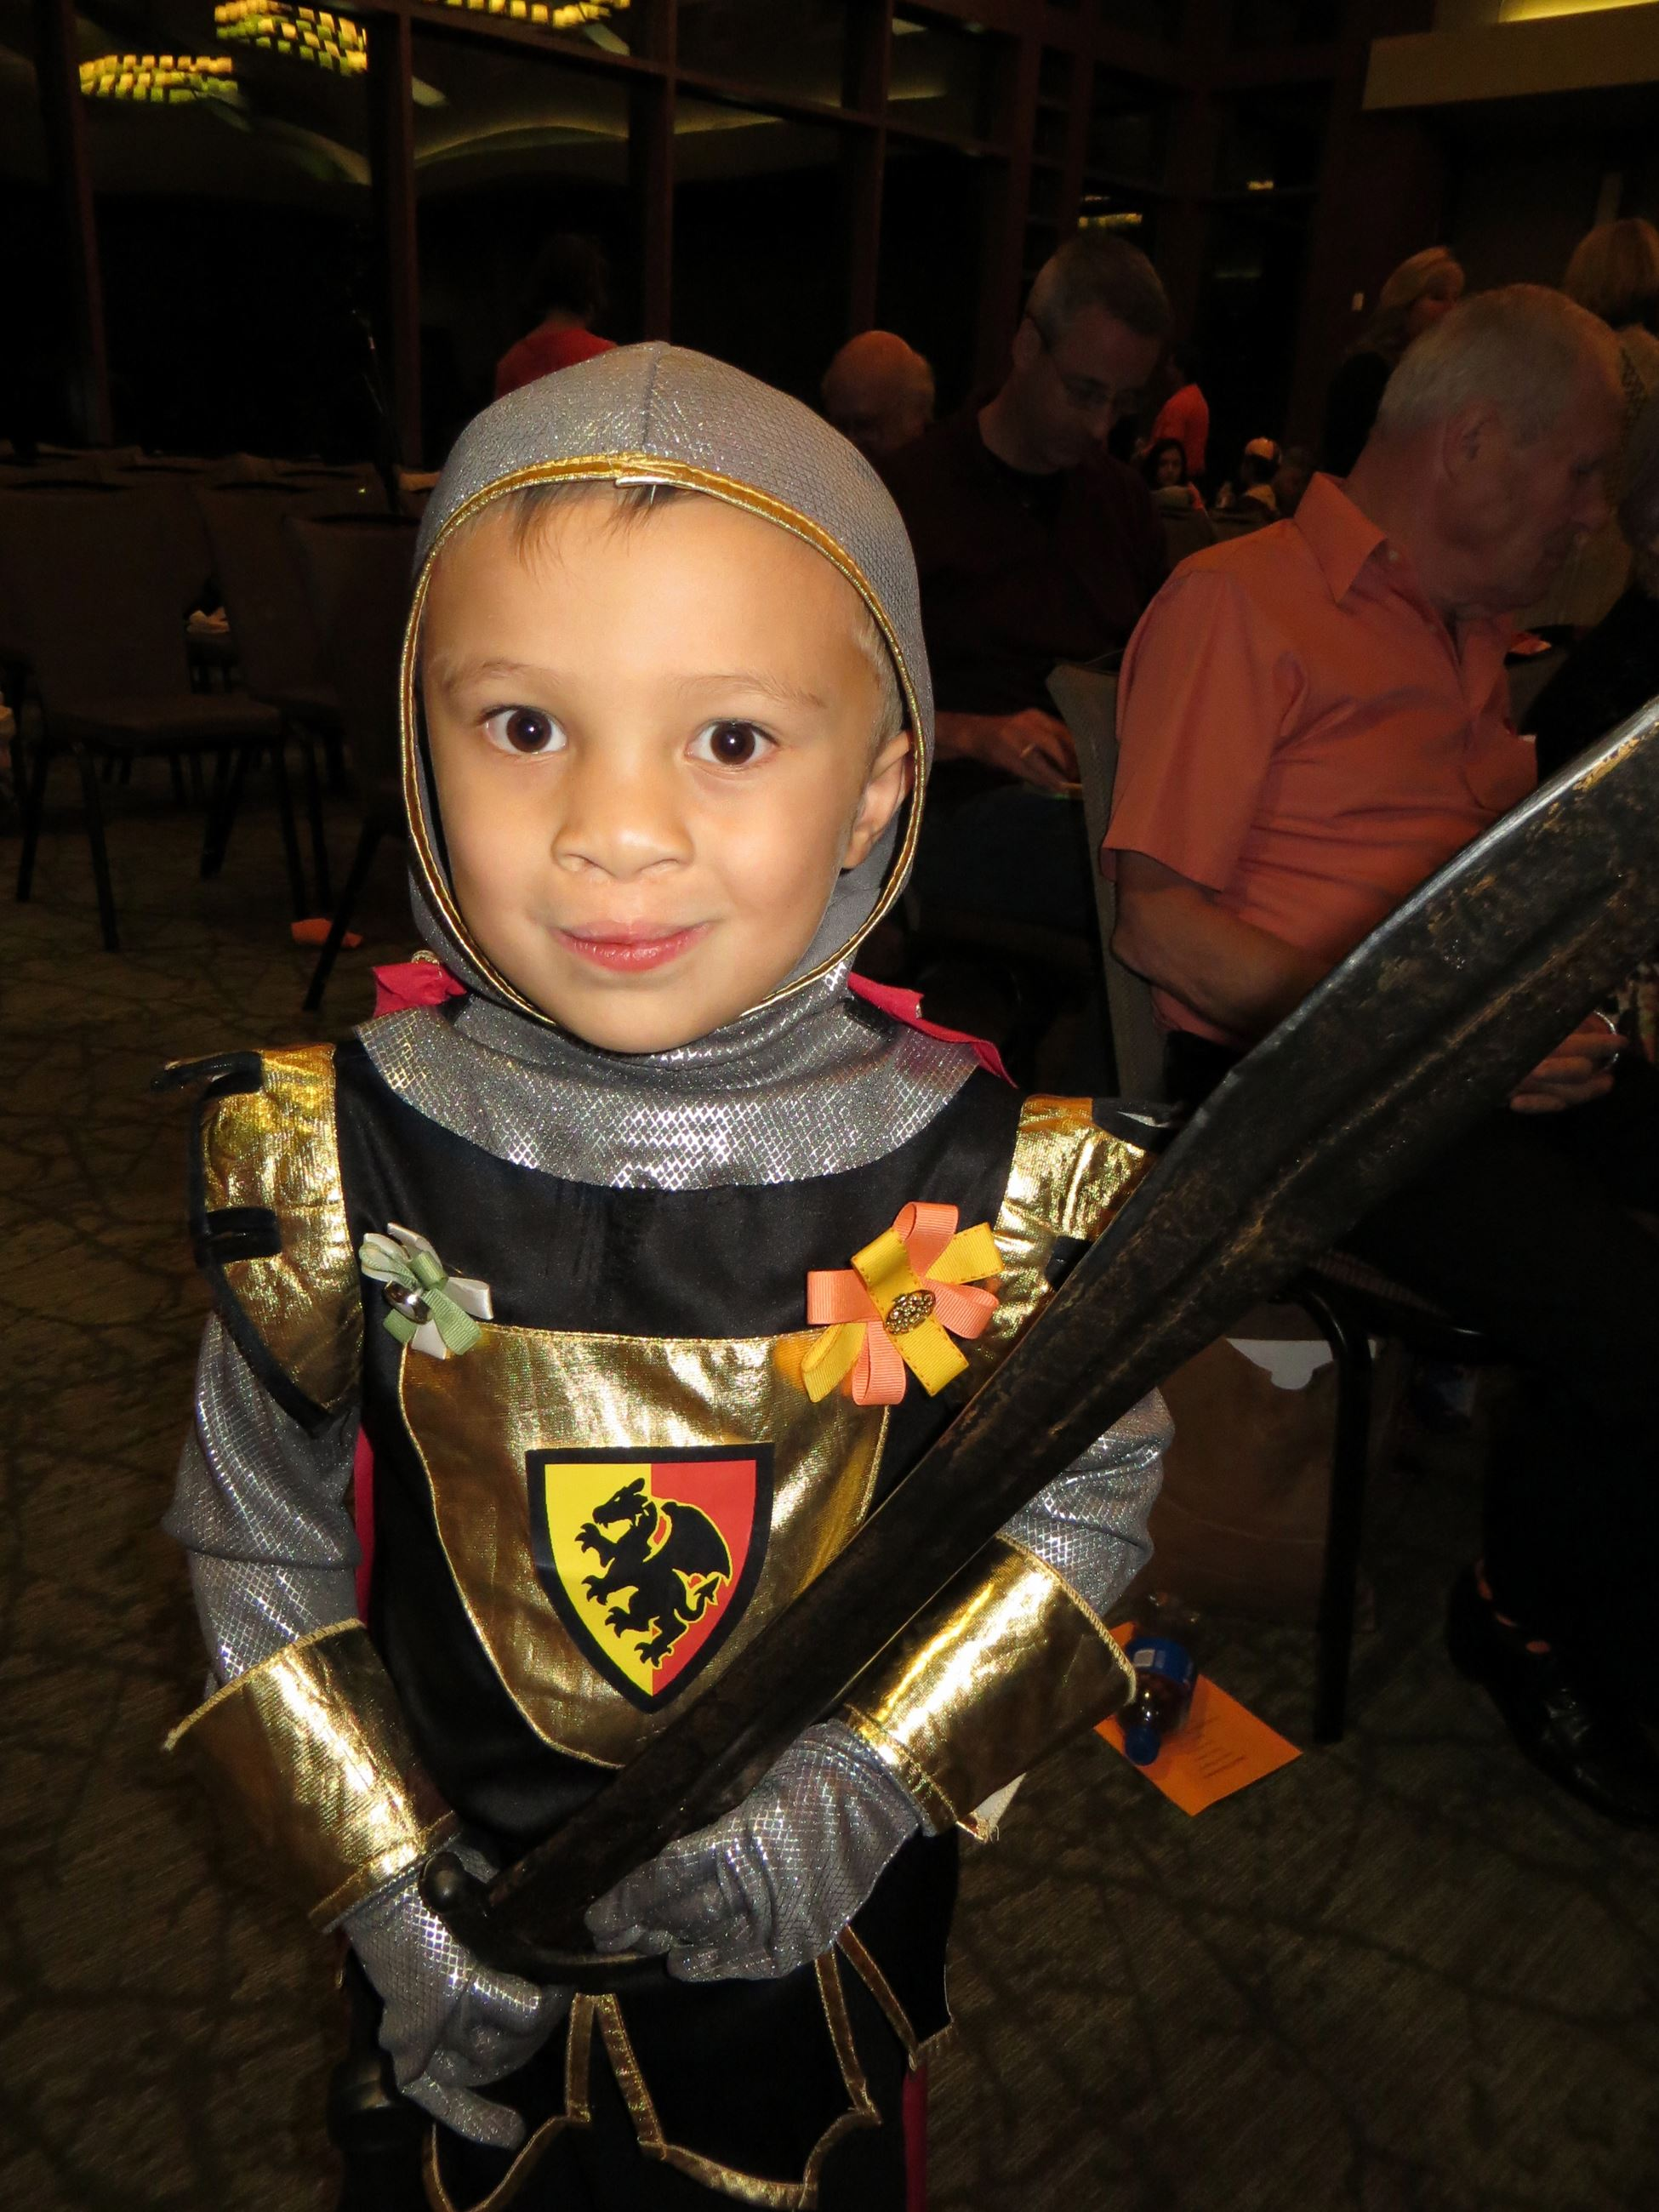 Close up of Boy in Knight Costume